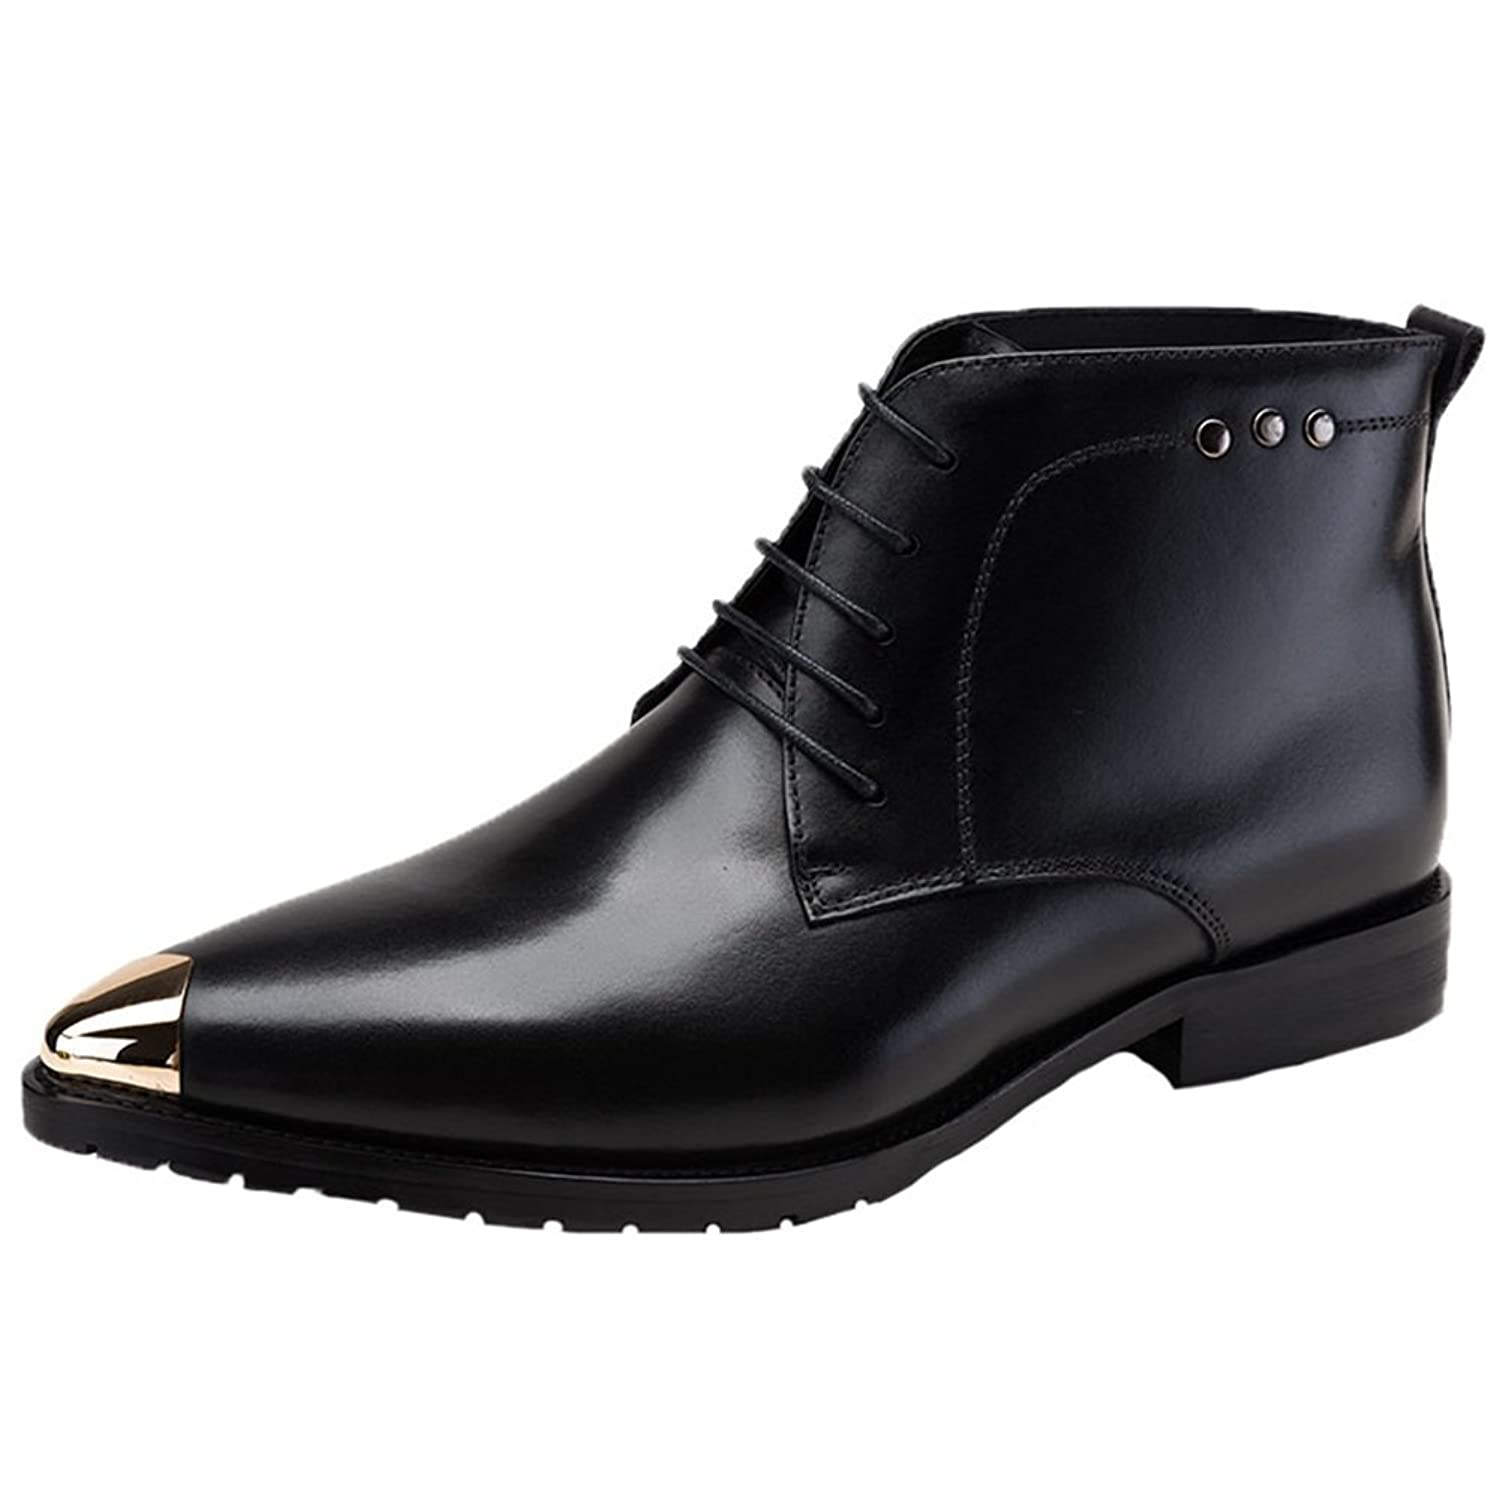 Santimon Men's Dress Boots Leather Ankle Steel Toed Lace up Derby Shoes